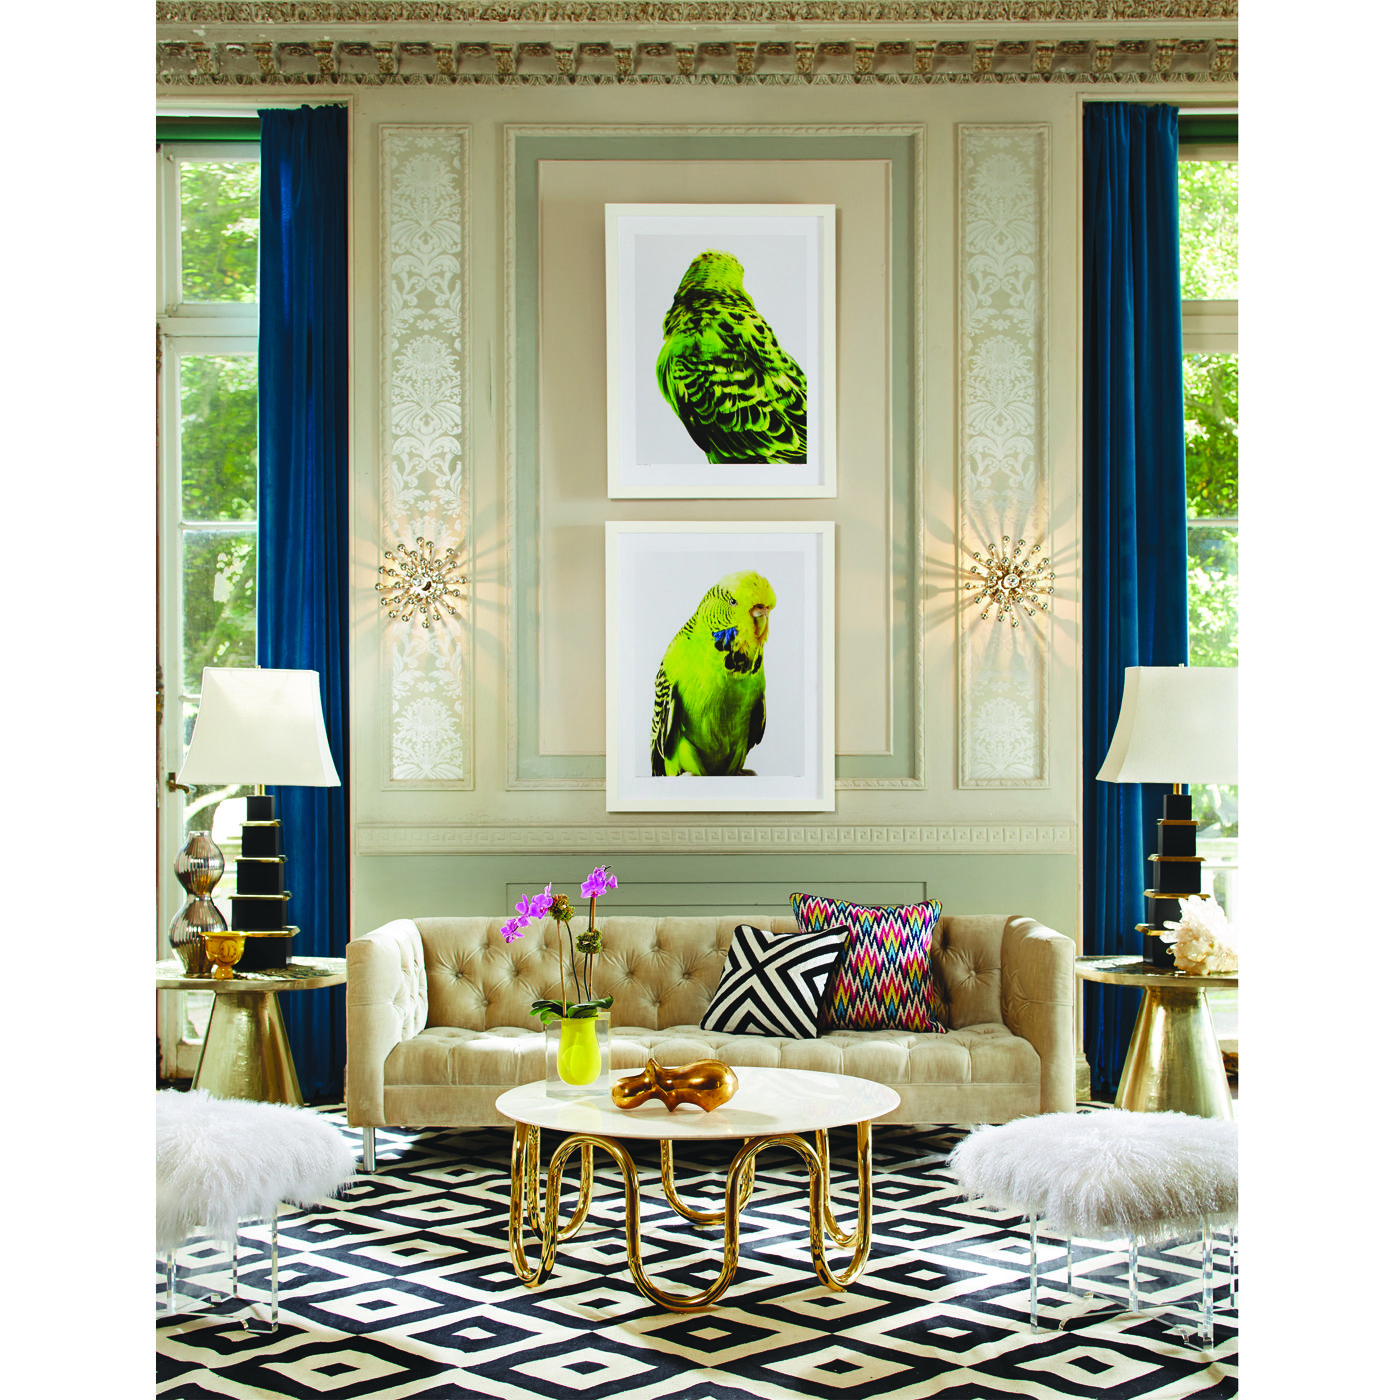 Jonathan Adler Baxter Sofa: Minimalist Glamour For Your Maximalist Room